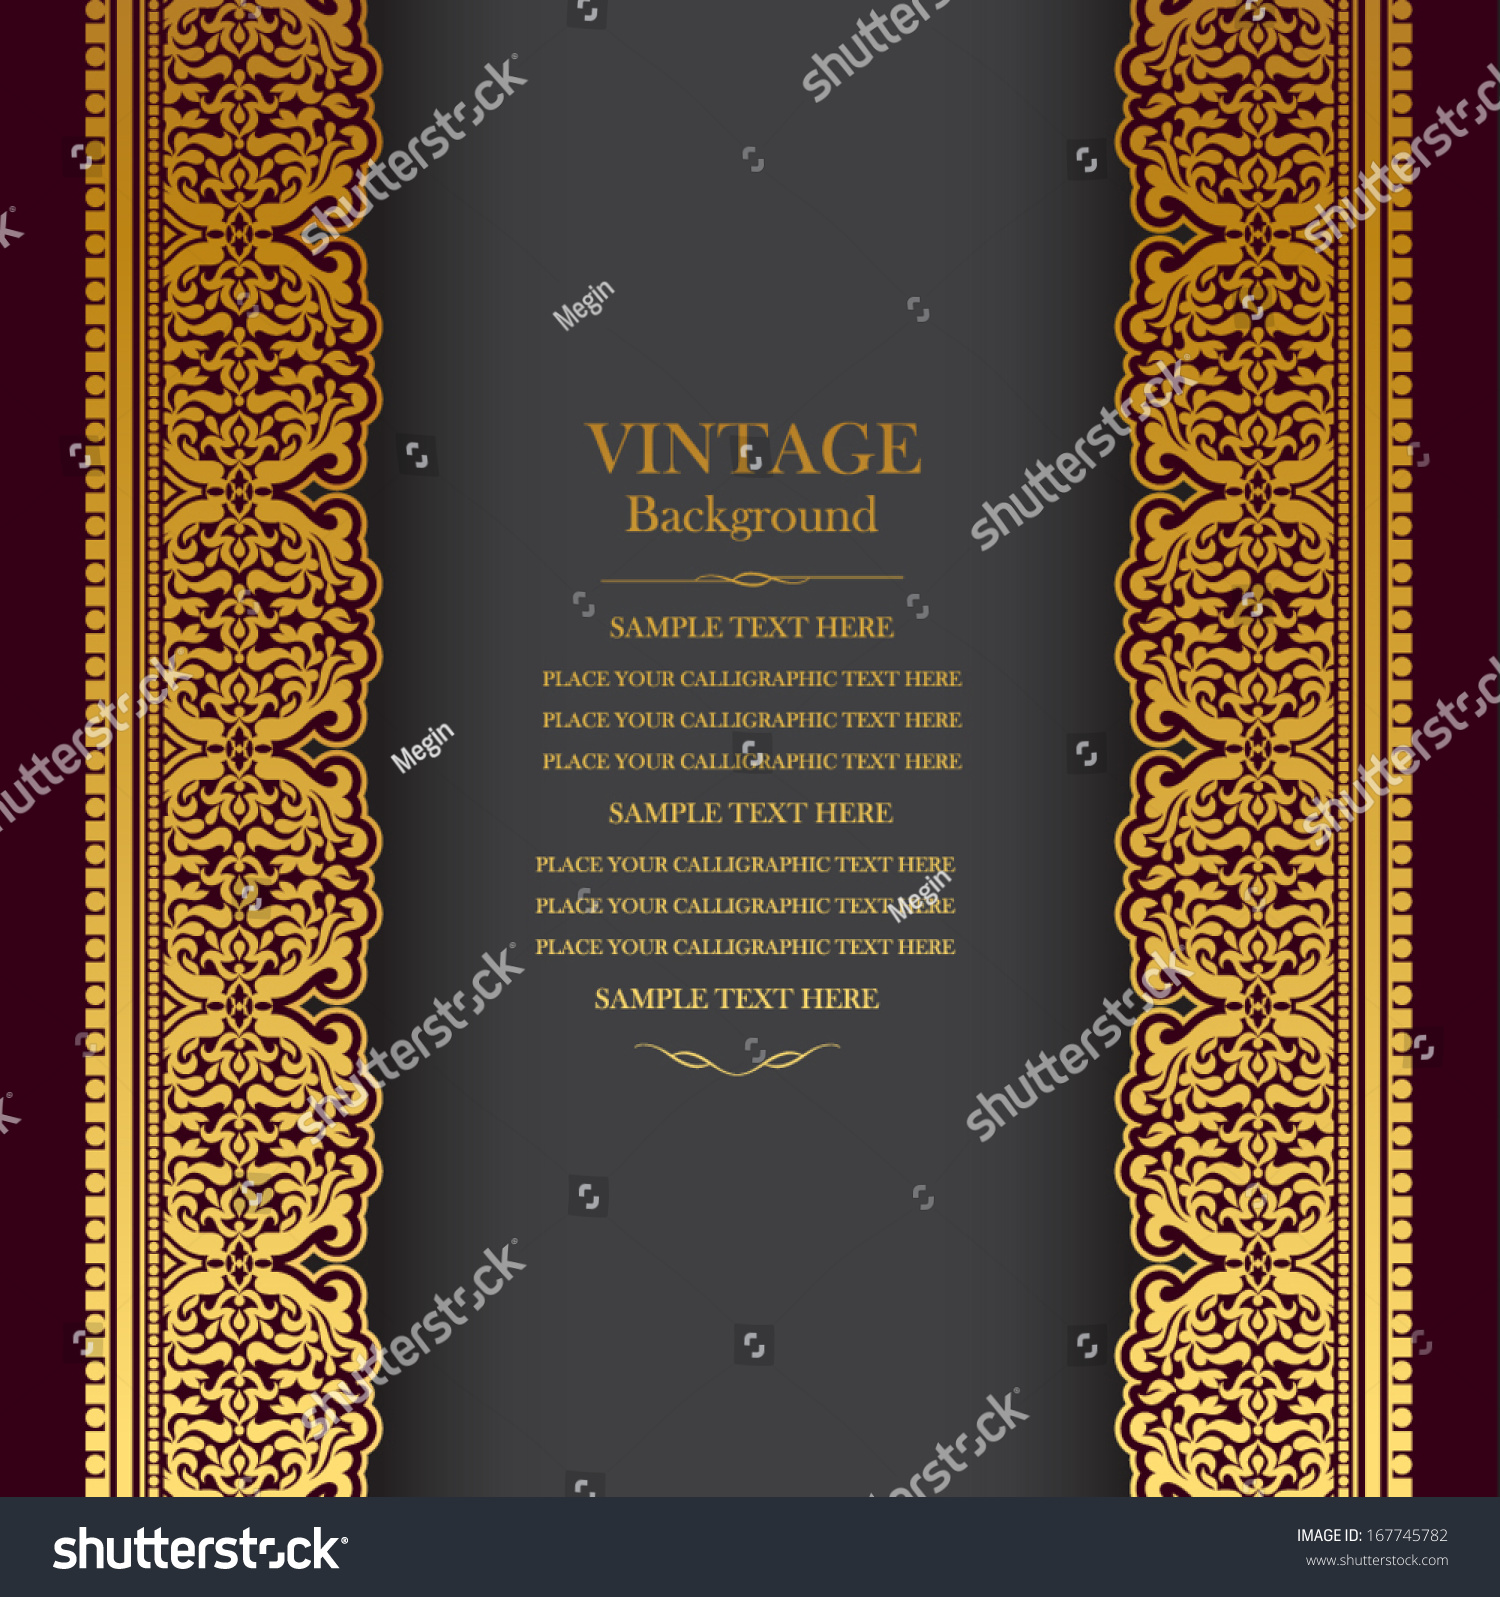 Vintage Style Book Cover : Vintage background design elegant book cover stock vector